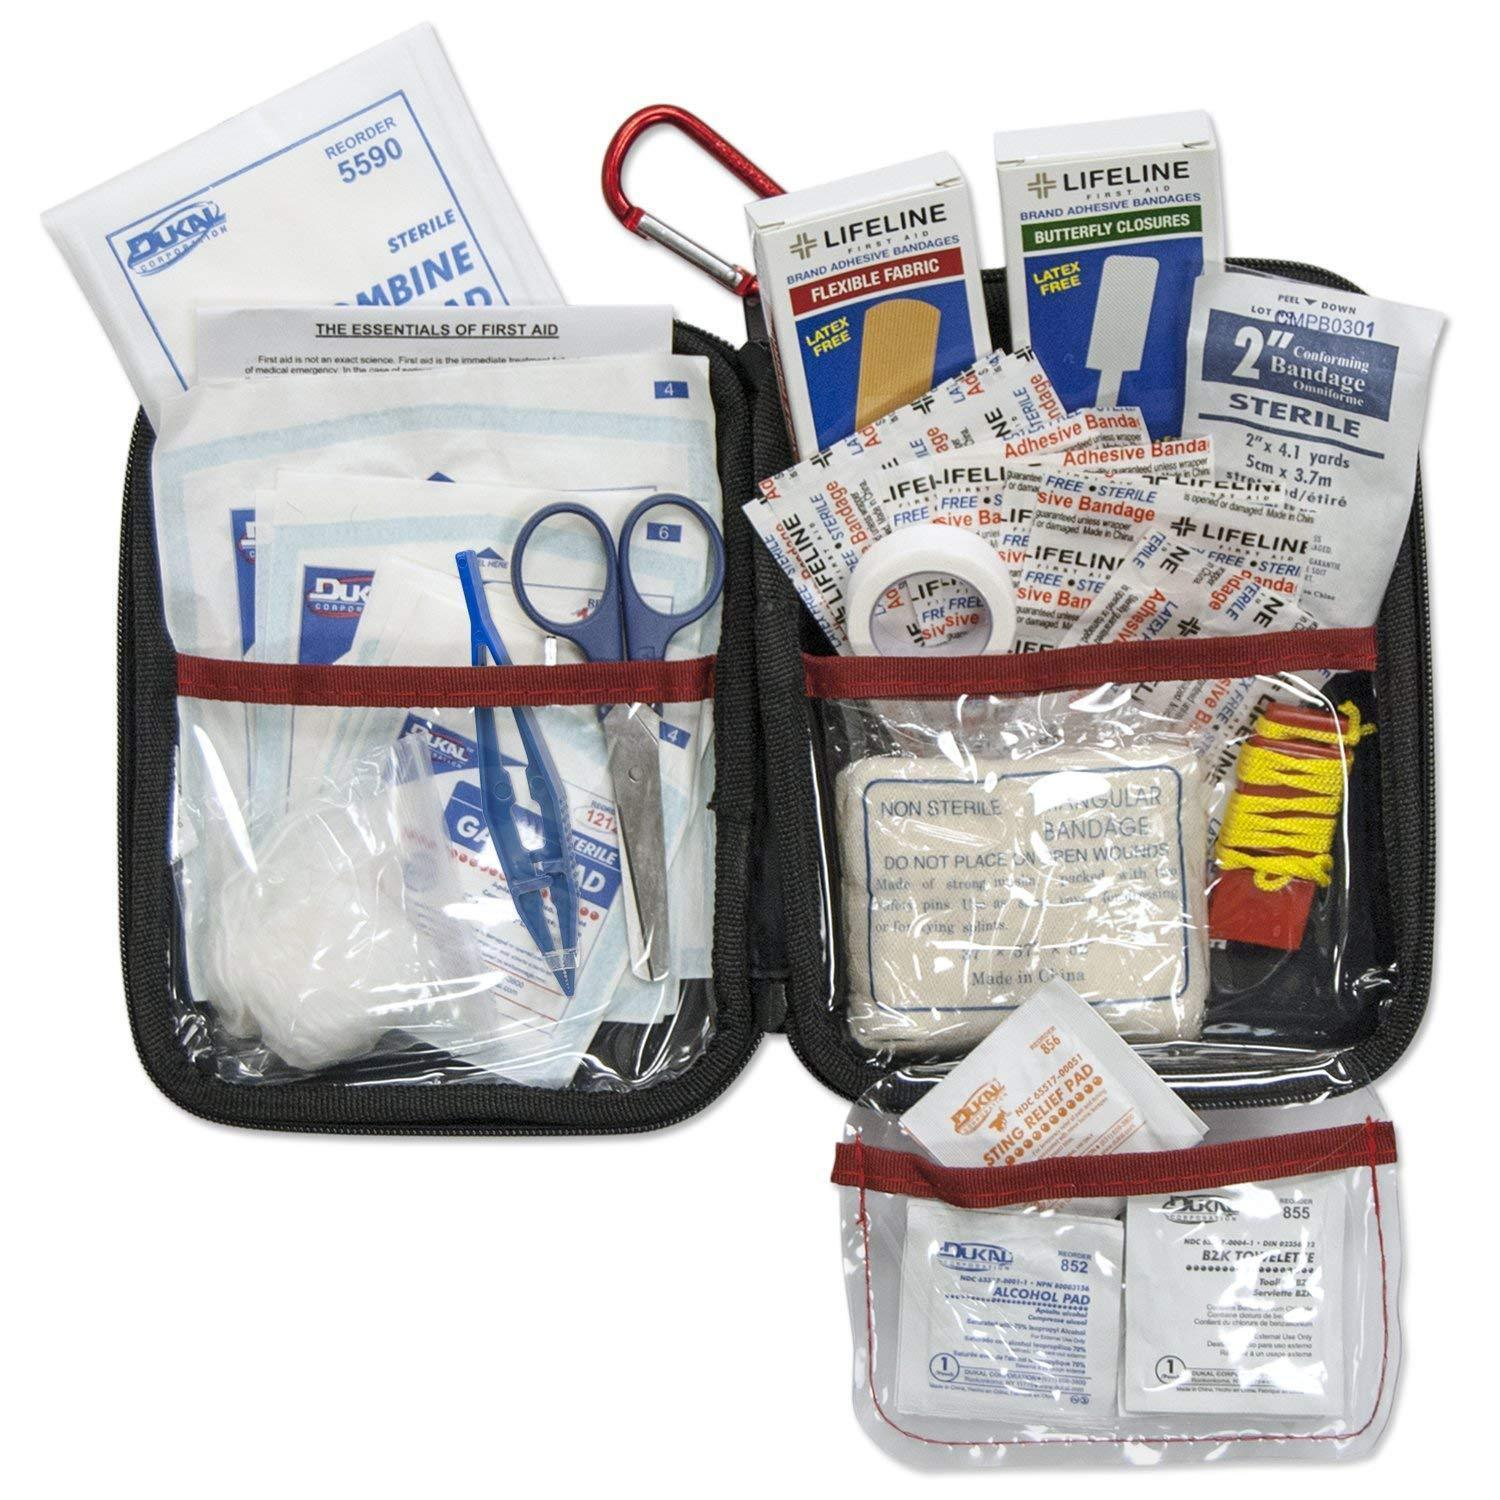 Lifeline Large Hard Shell Foam First Aid Kit 85 Pieces Tactical Gear Australia Supplier Distributor Dealer